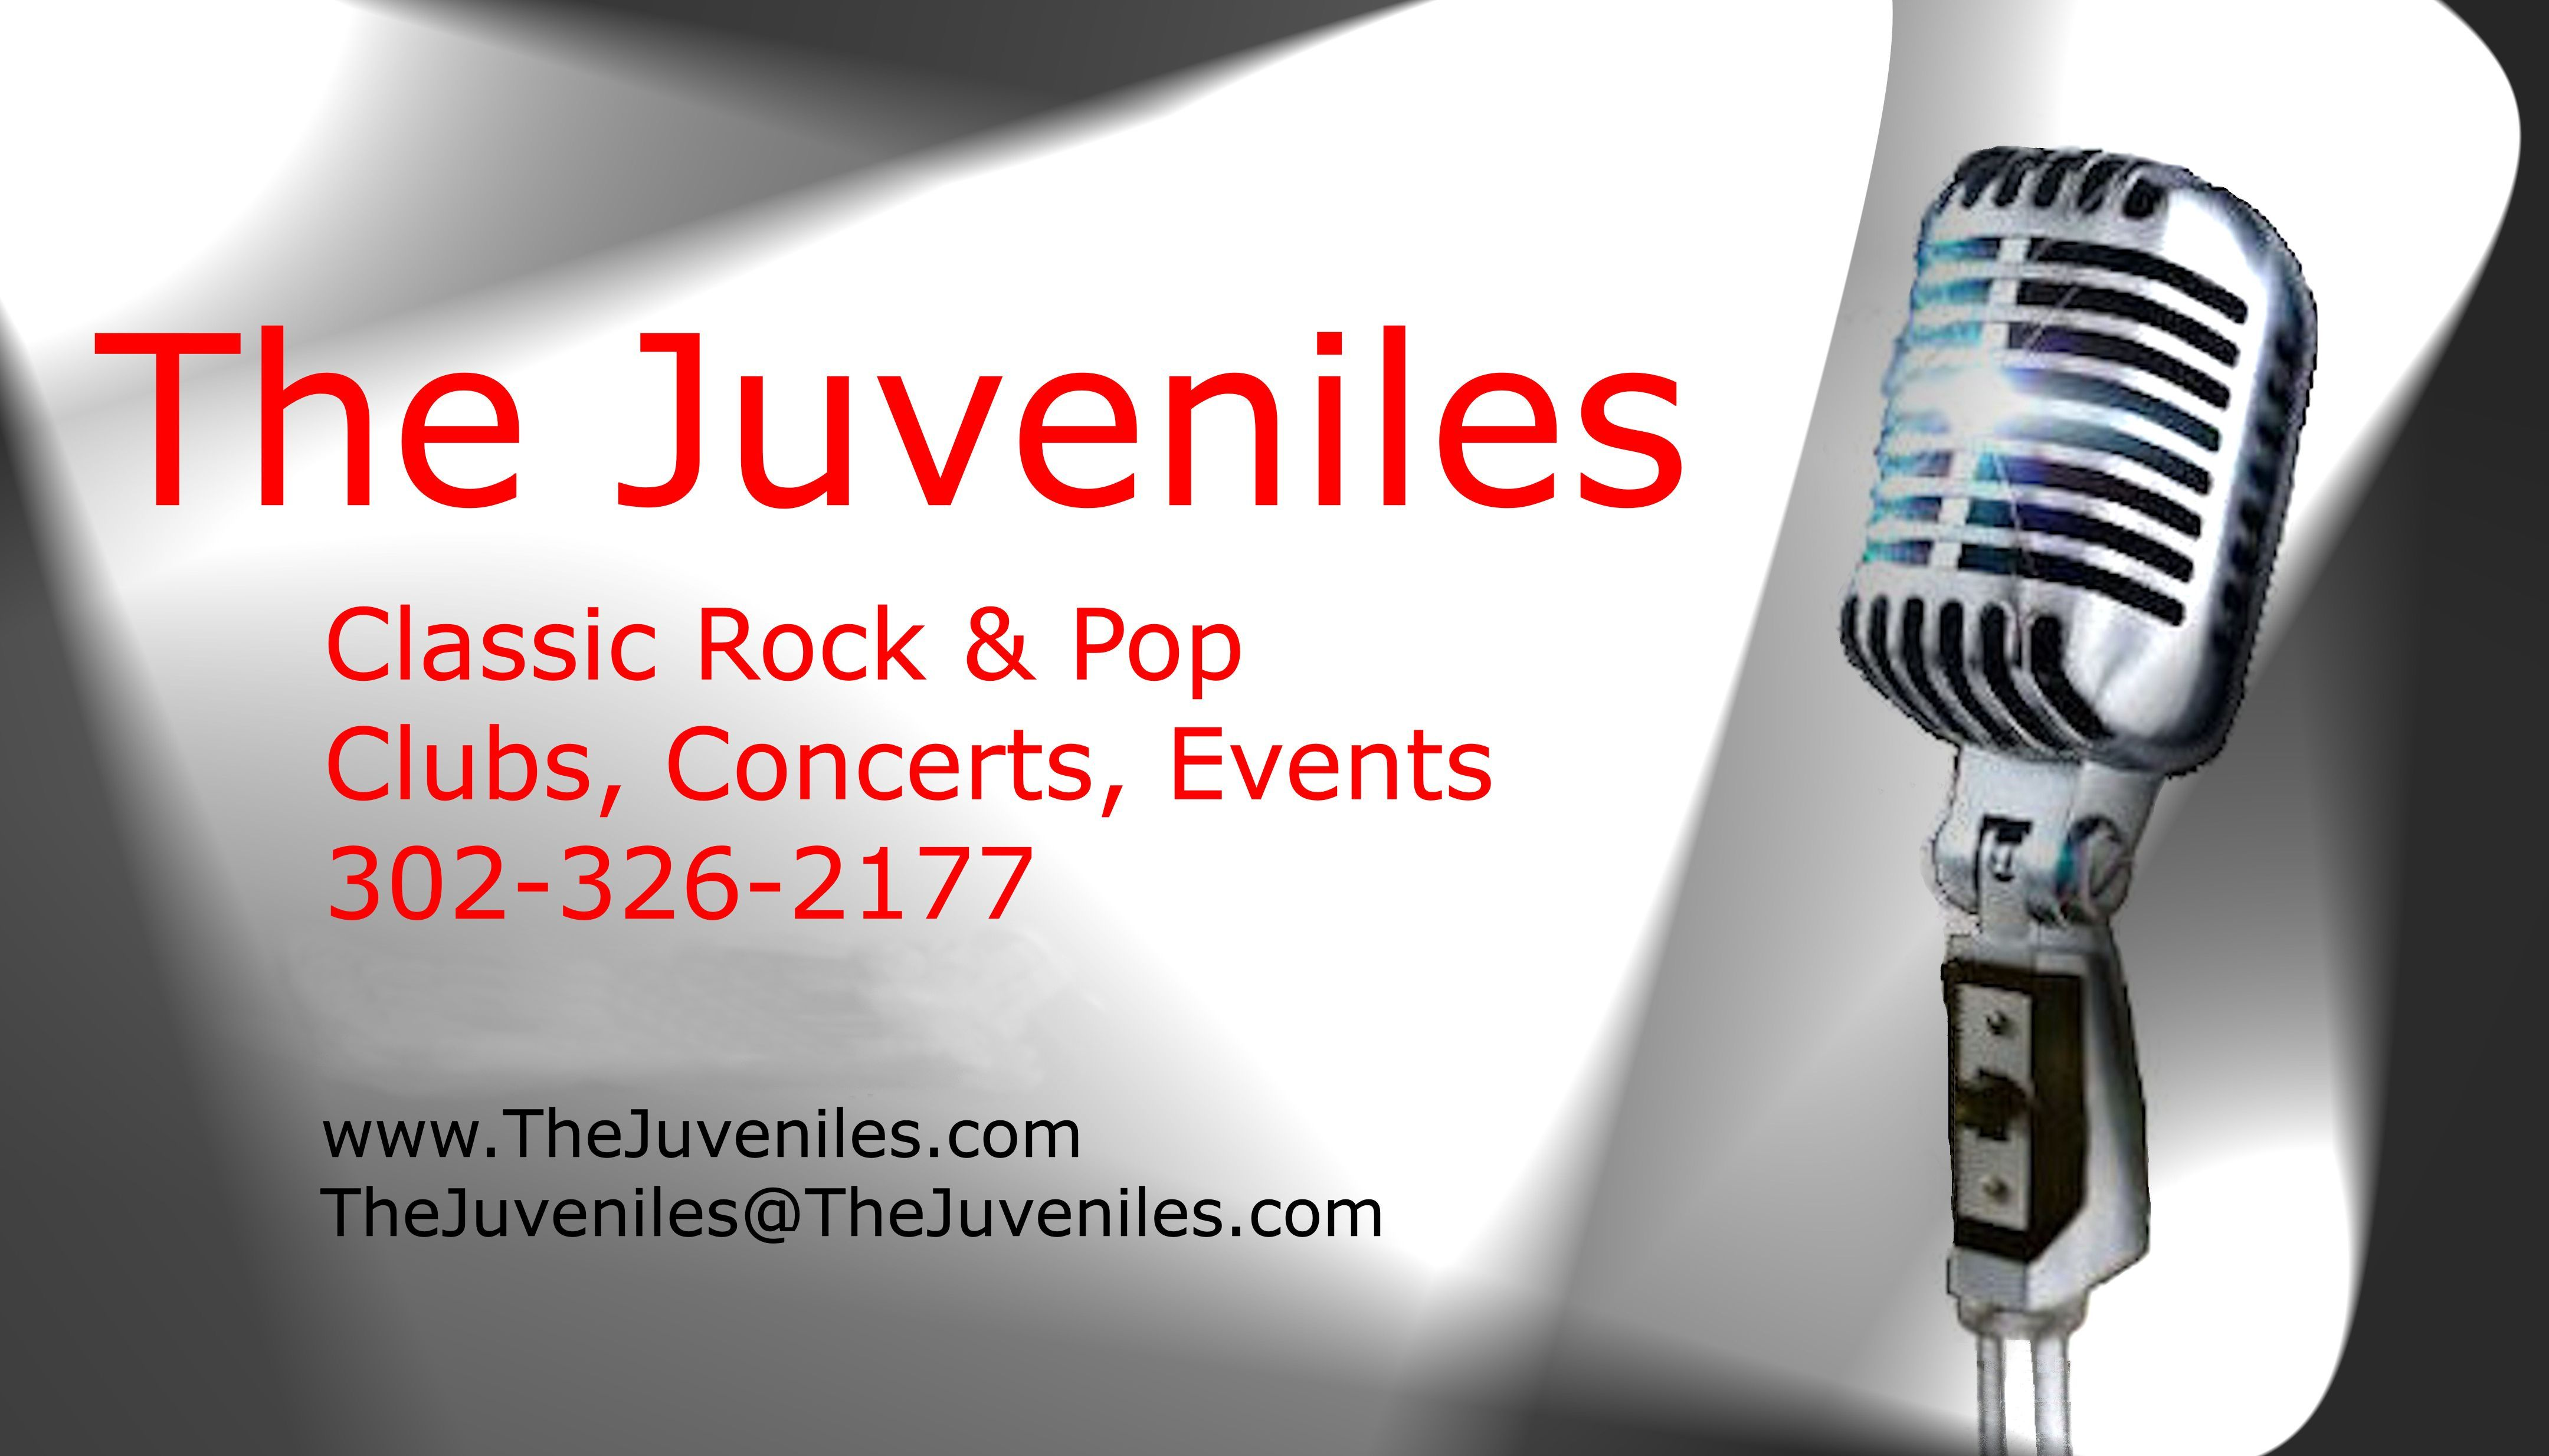 The Juveniles Business Card